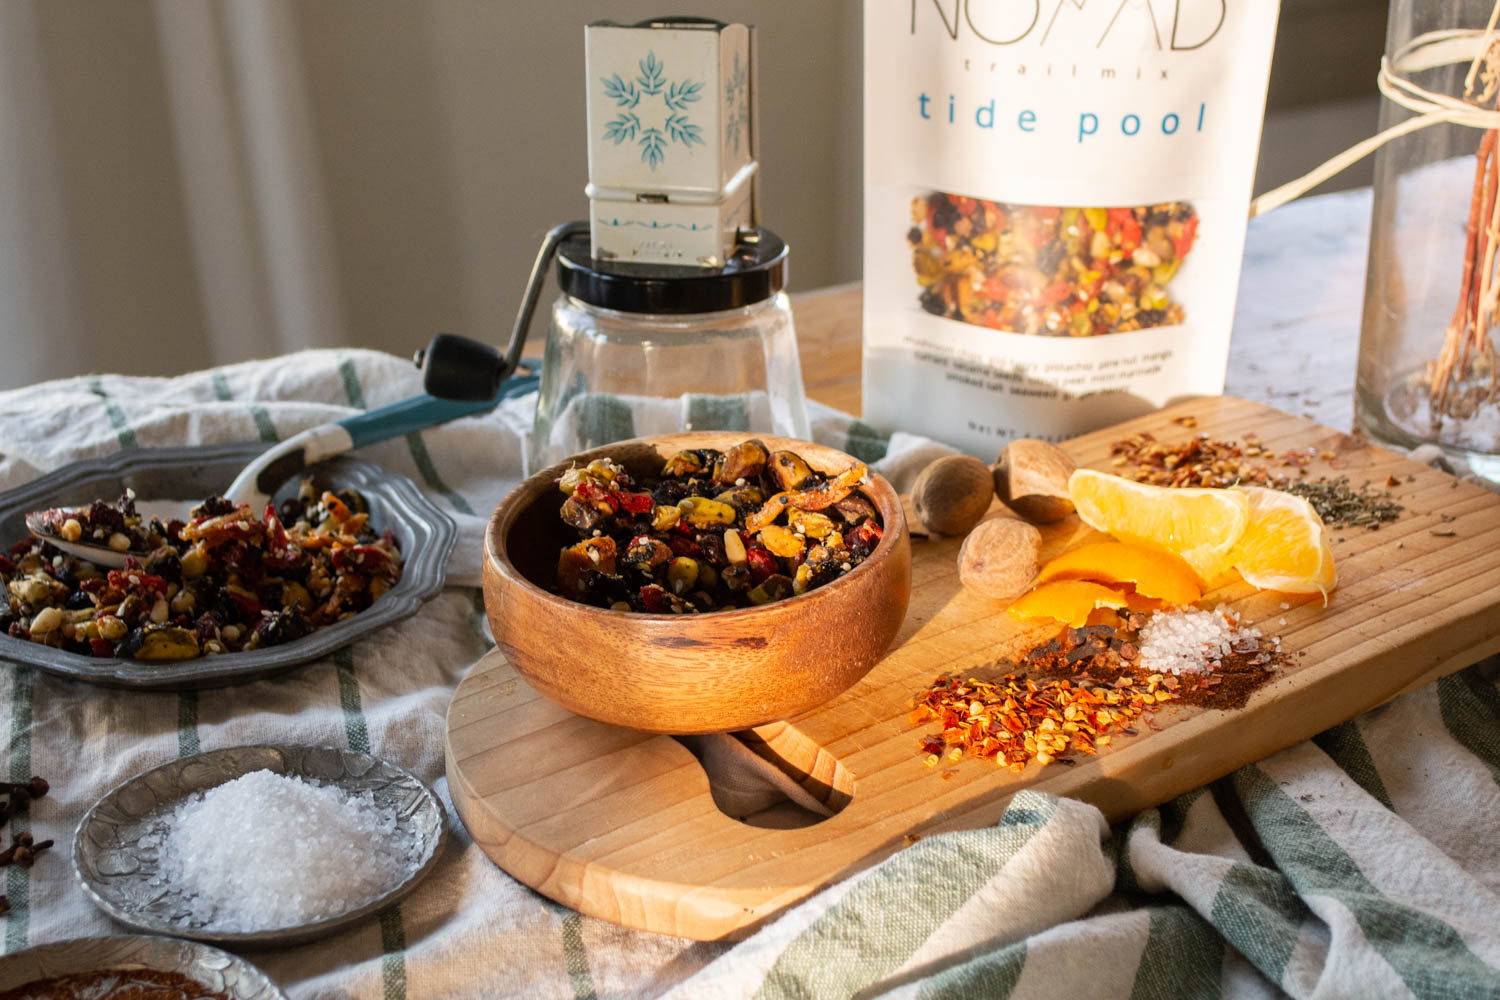 Nomad trail mix with raw ingredients spread out on table arranged in sunlight. food photography